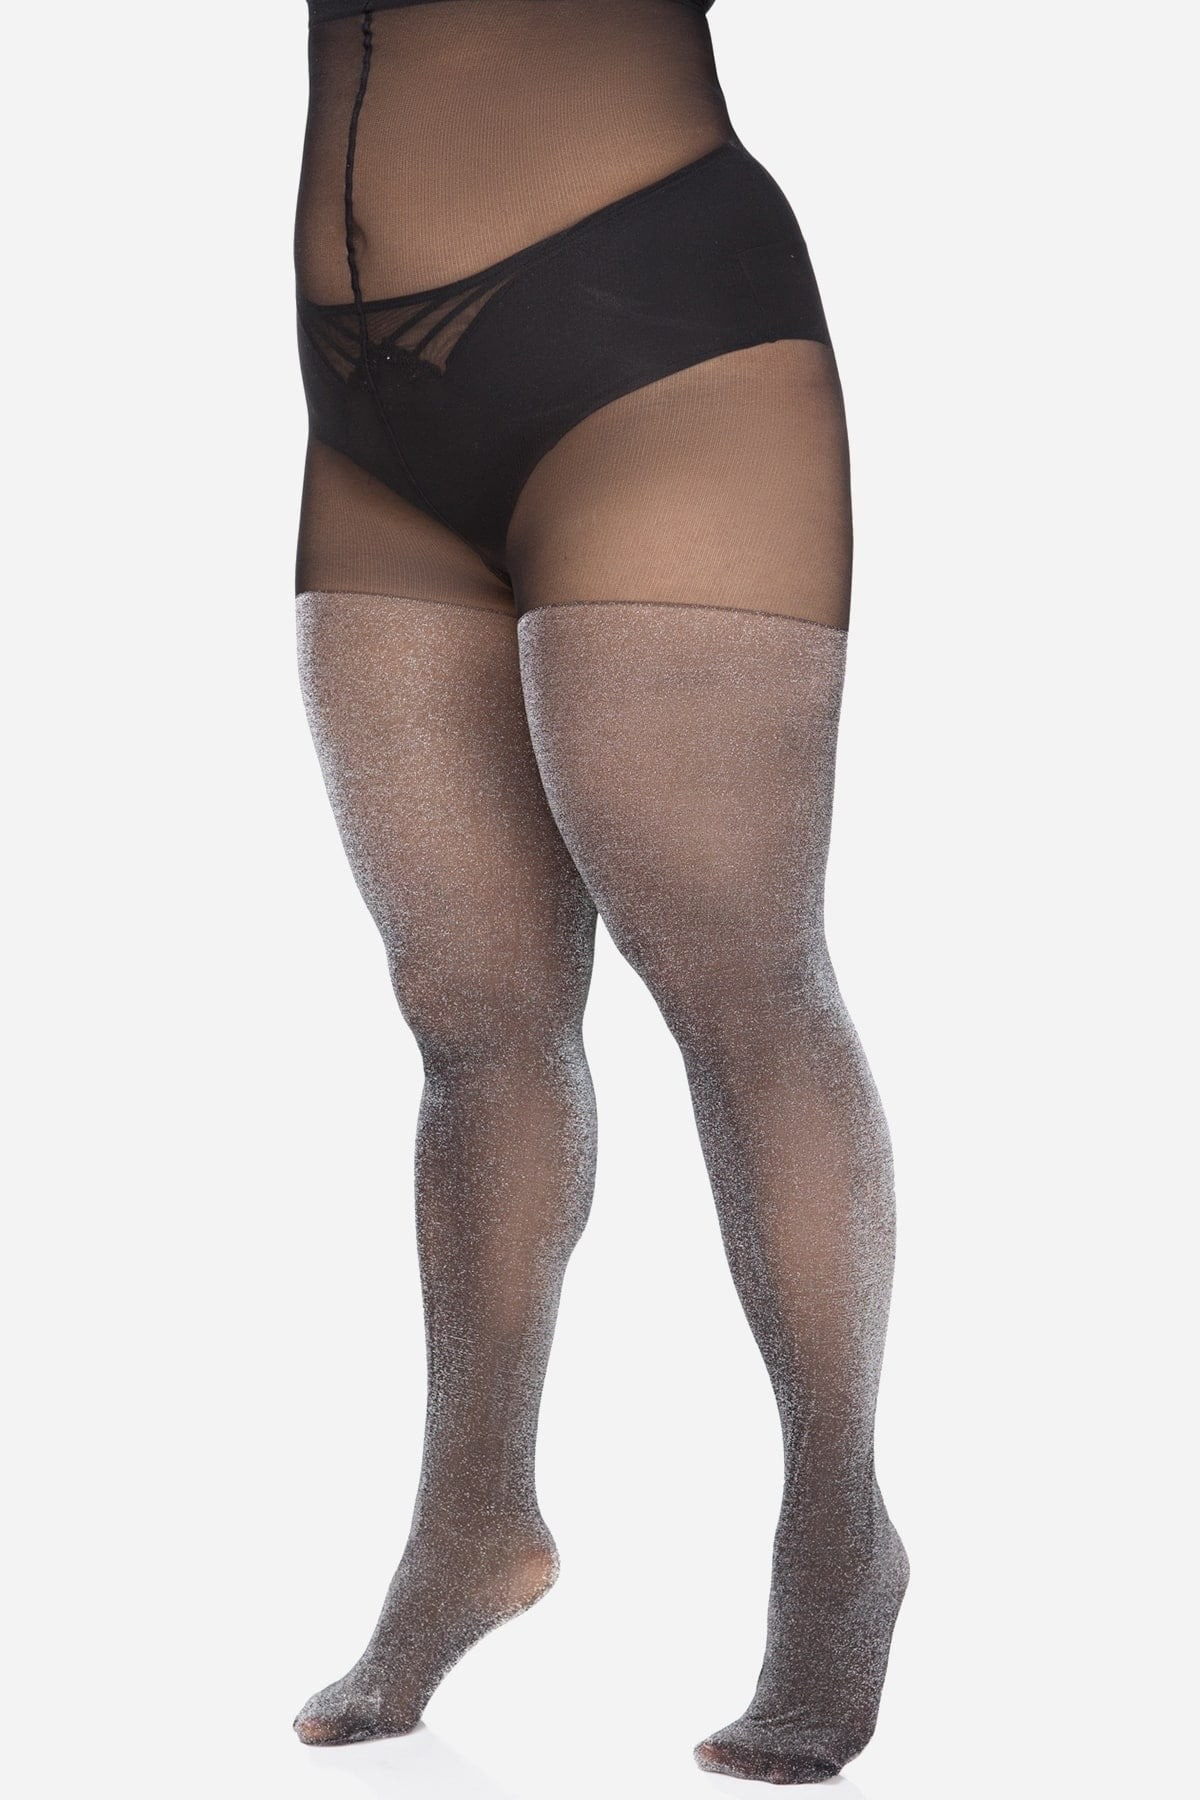 Lurex tights 30 DEN